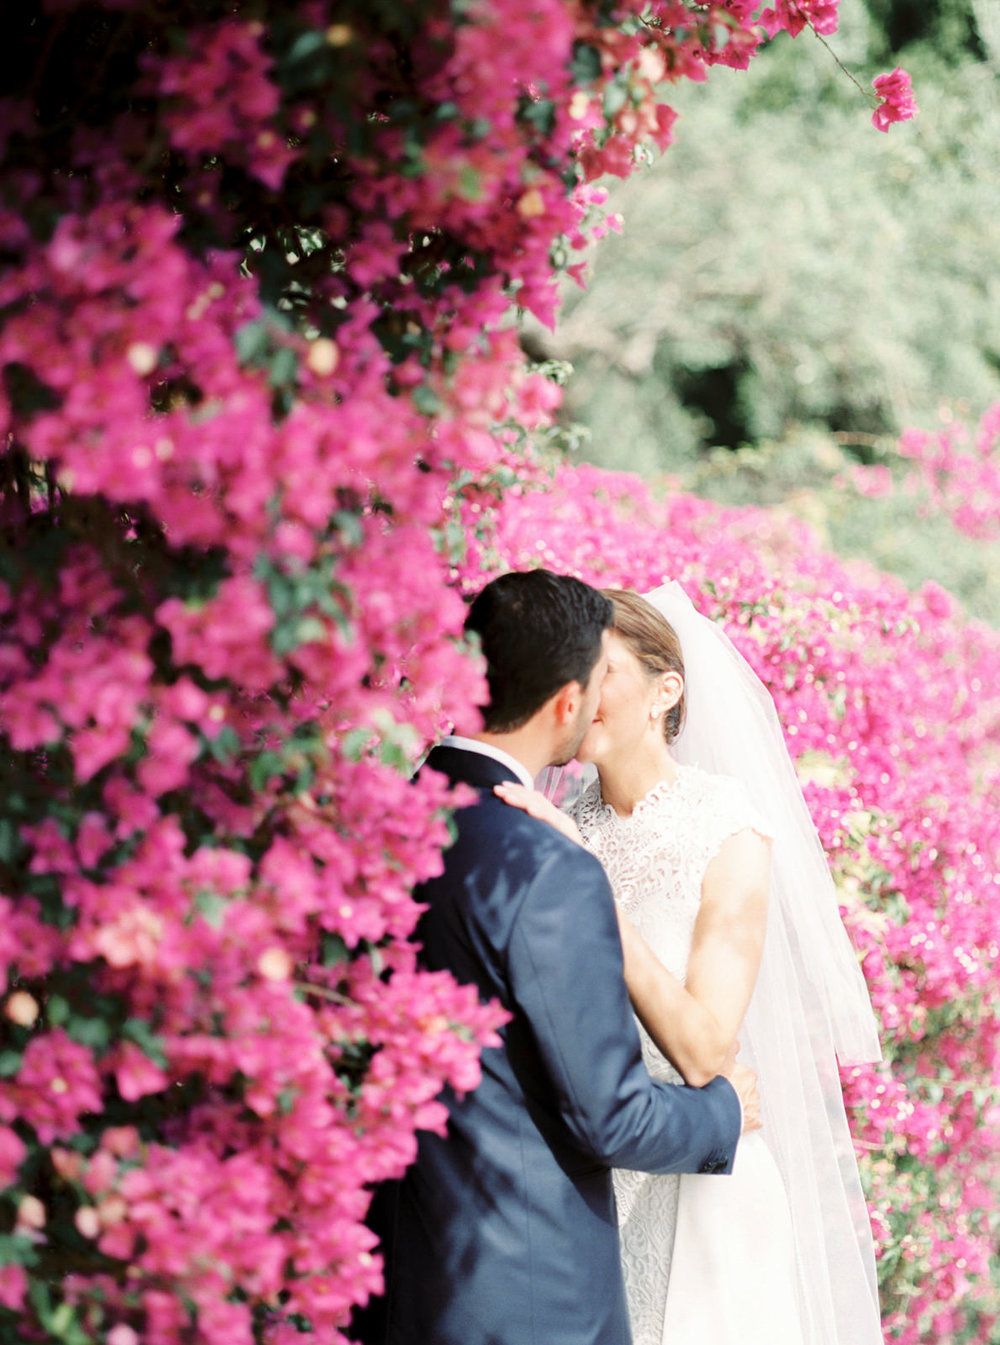 Destination Wedding in Taormina Sicily by CHYMO & MORE